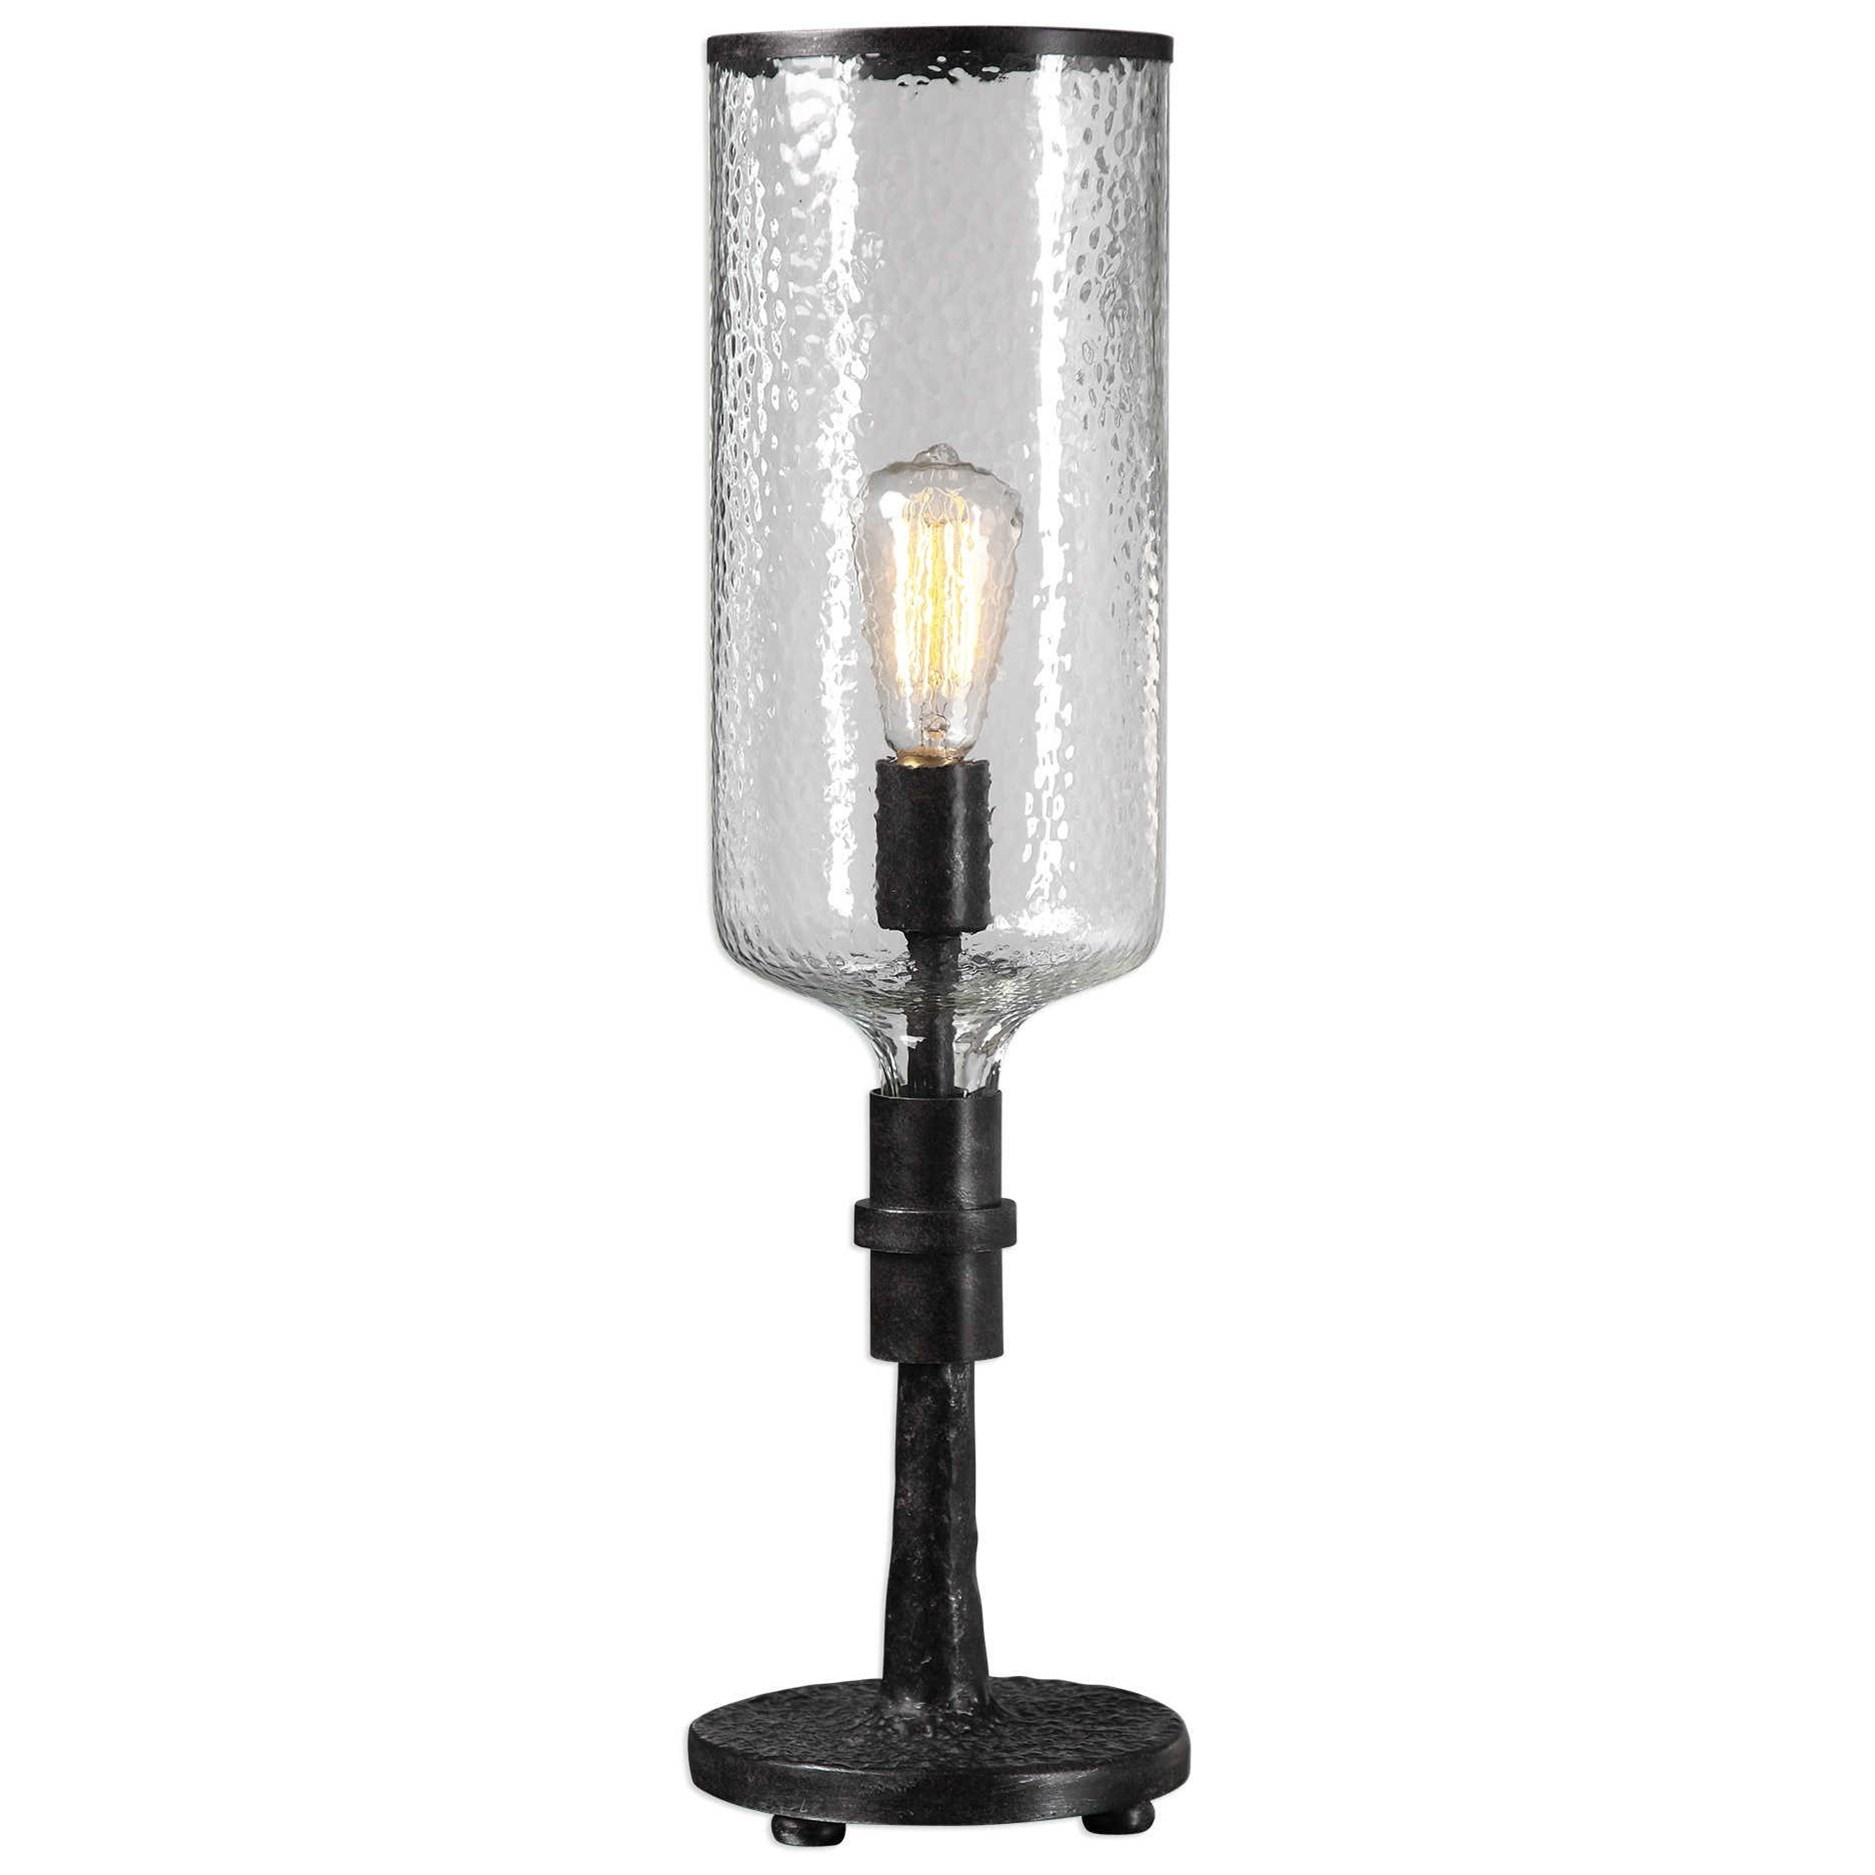 Accent Lamps Hadley Old Industrial Accent Lamp by Uttermost at Sprintz Furniture